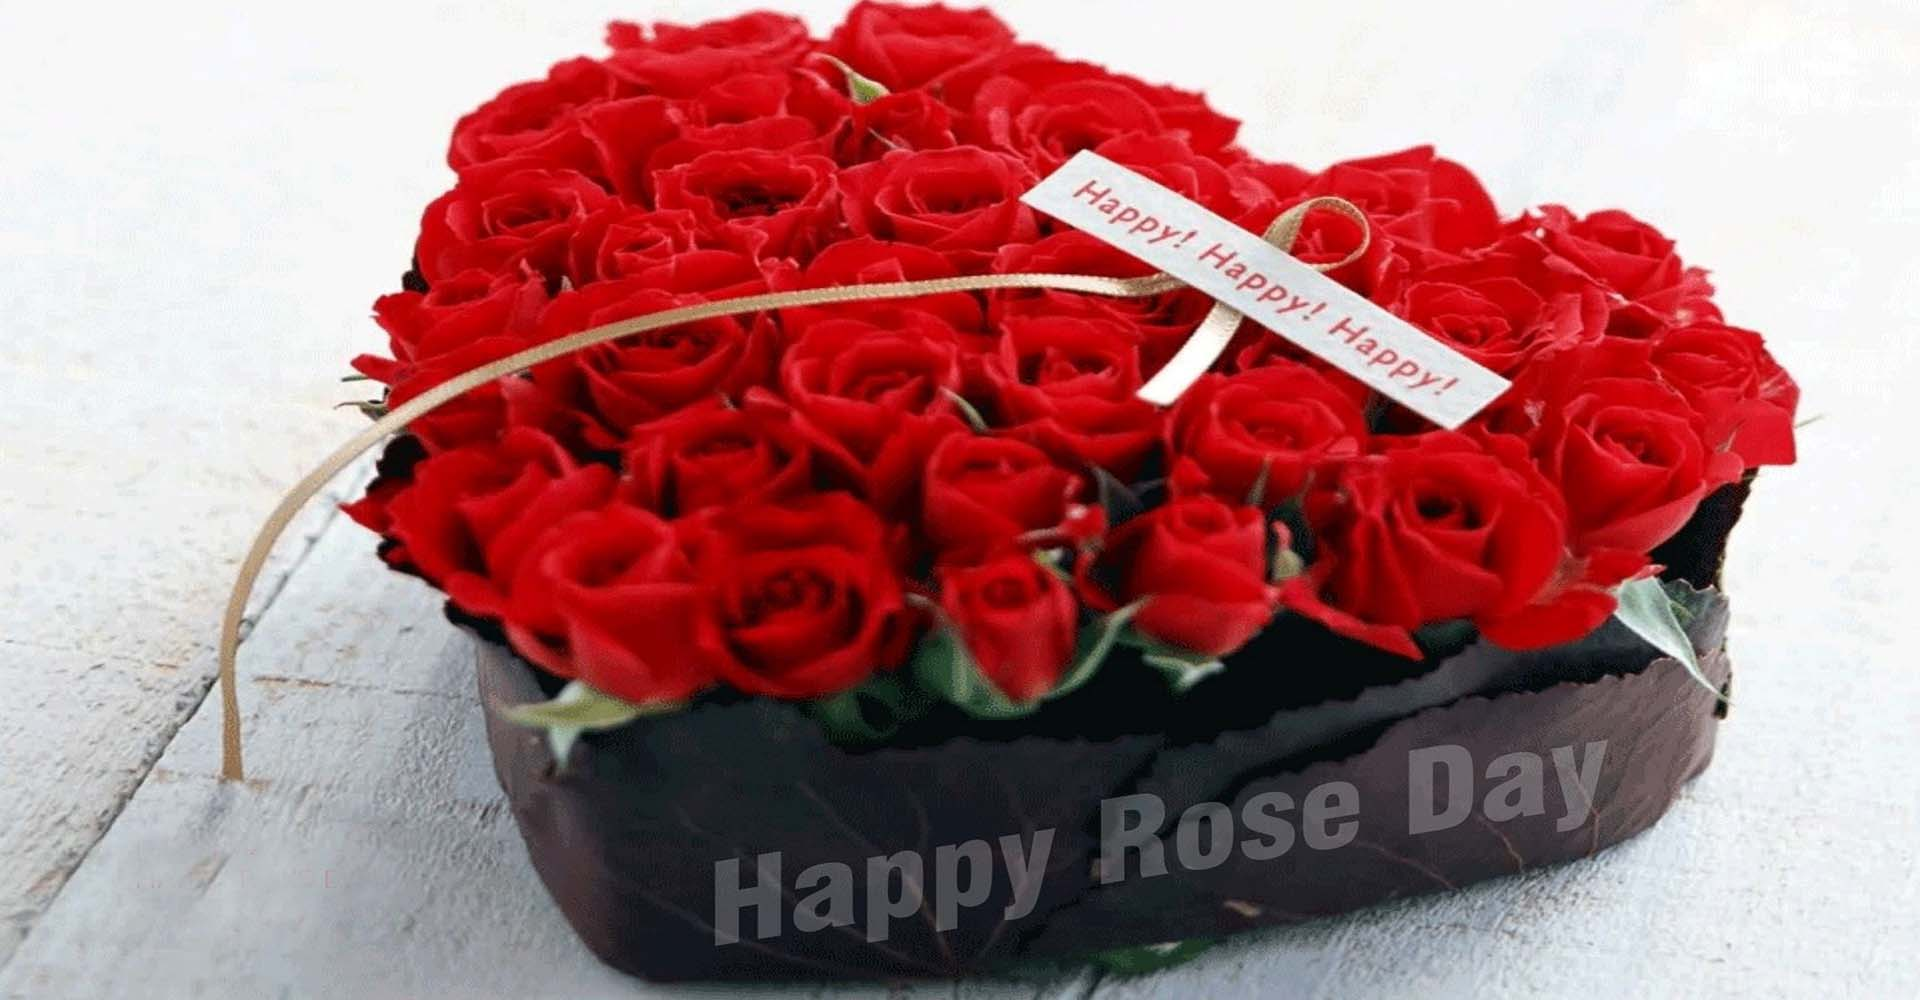 happy rose day red flowers heart gift february 7th background hd wallpaper